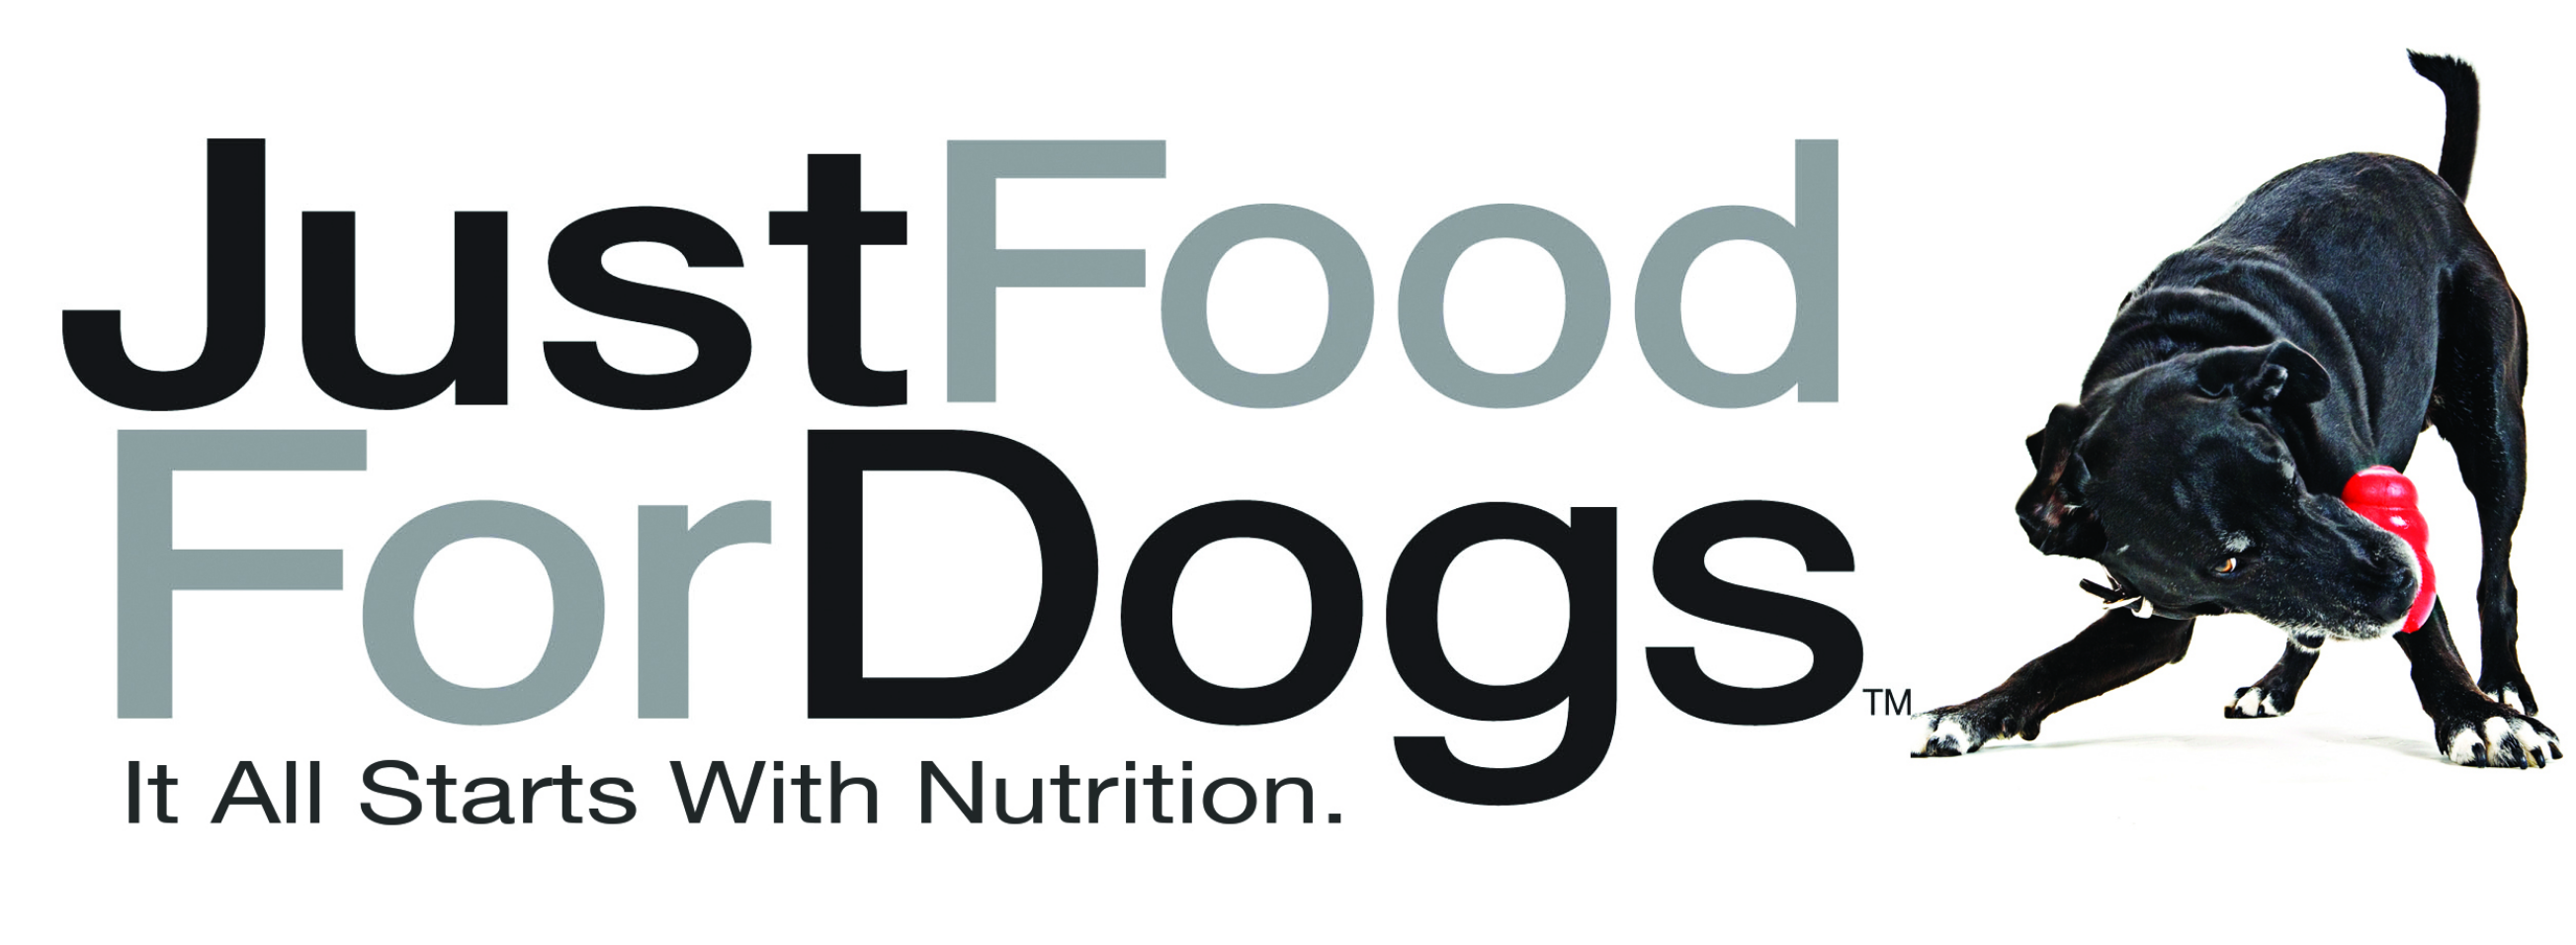 Just Food For Dogs Manhattan Beach Ca